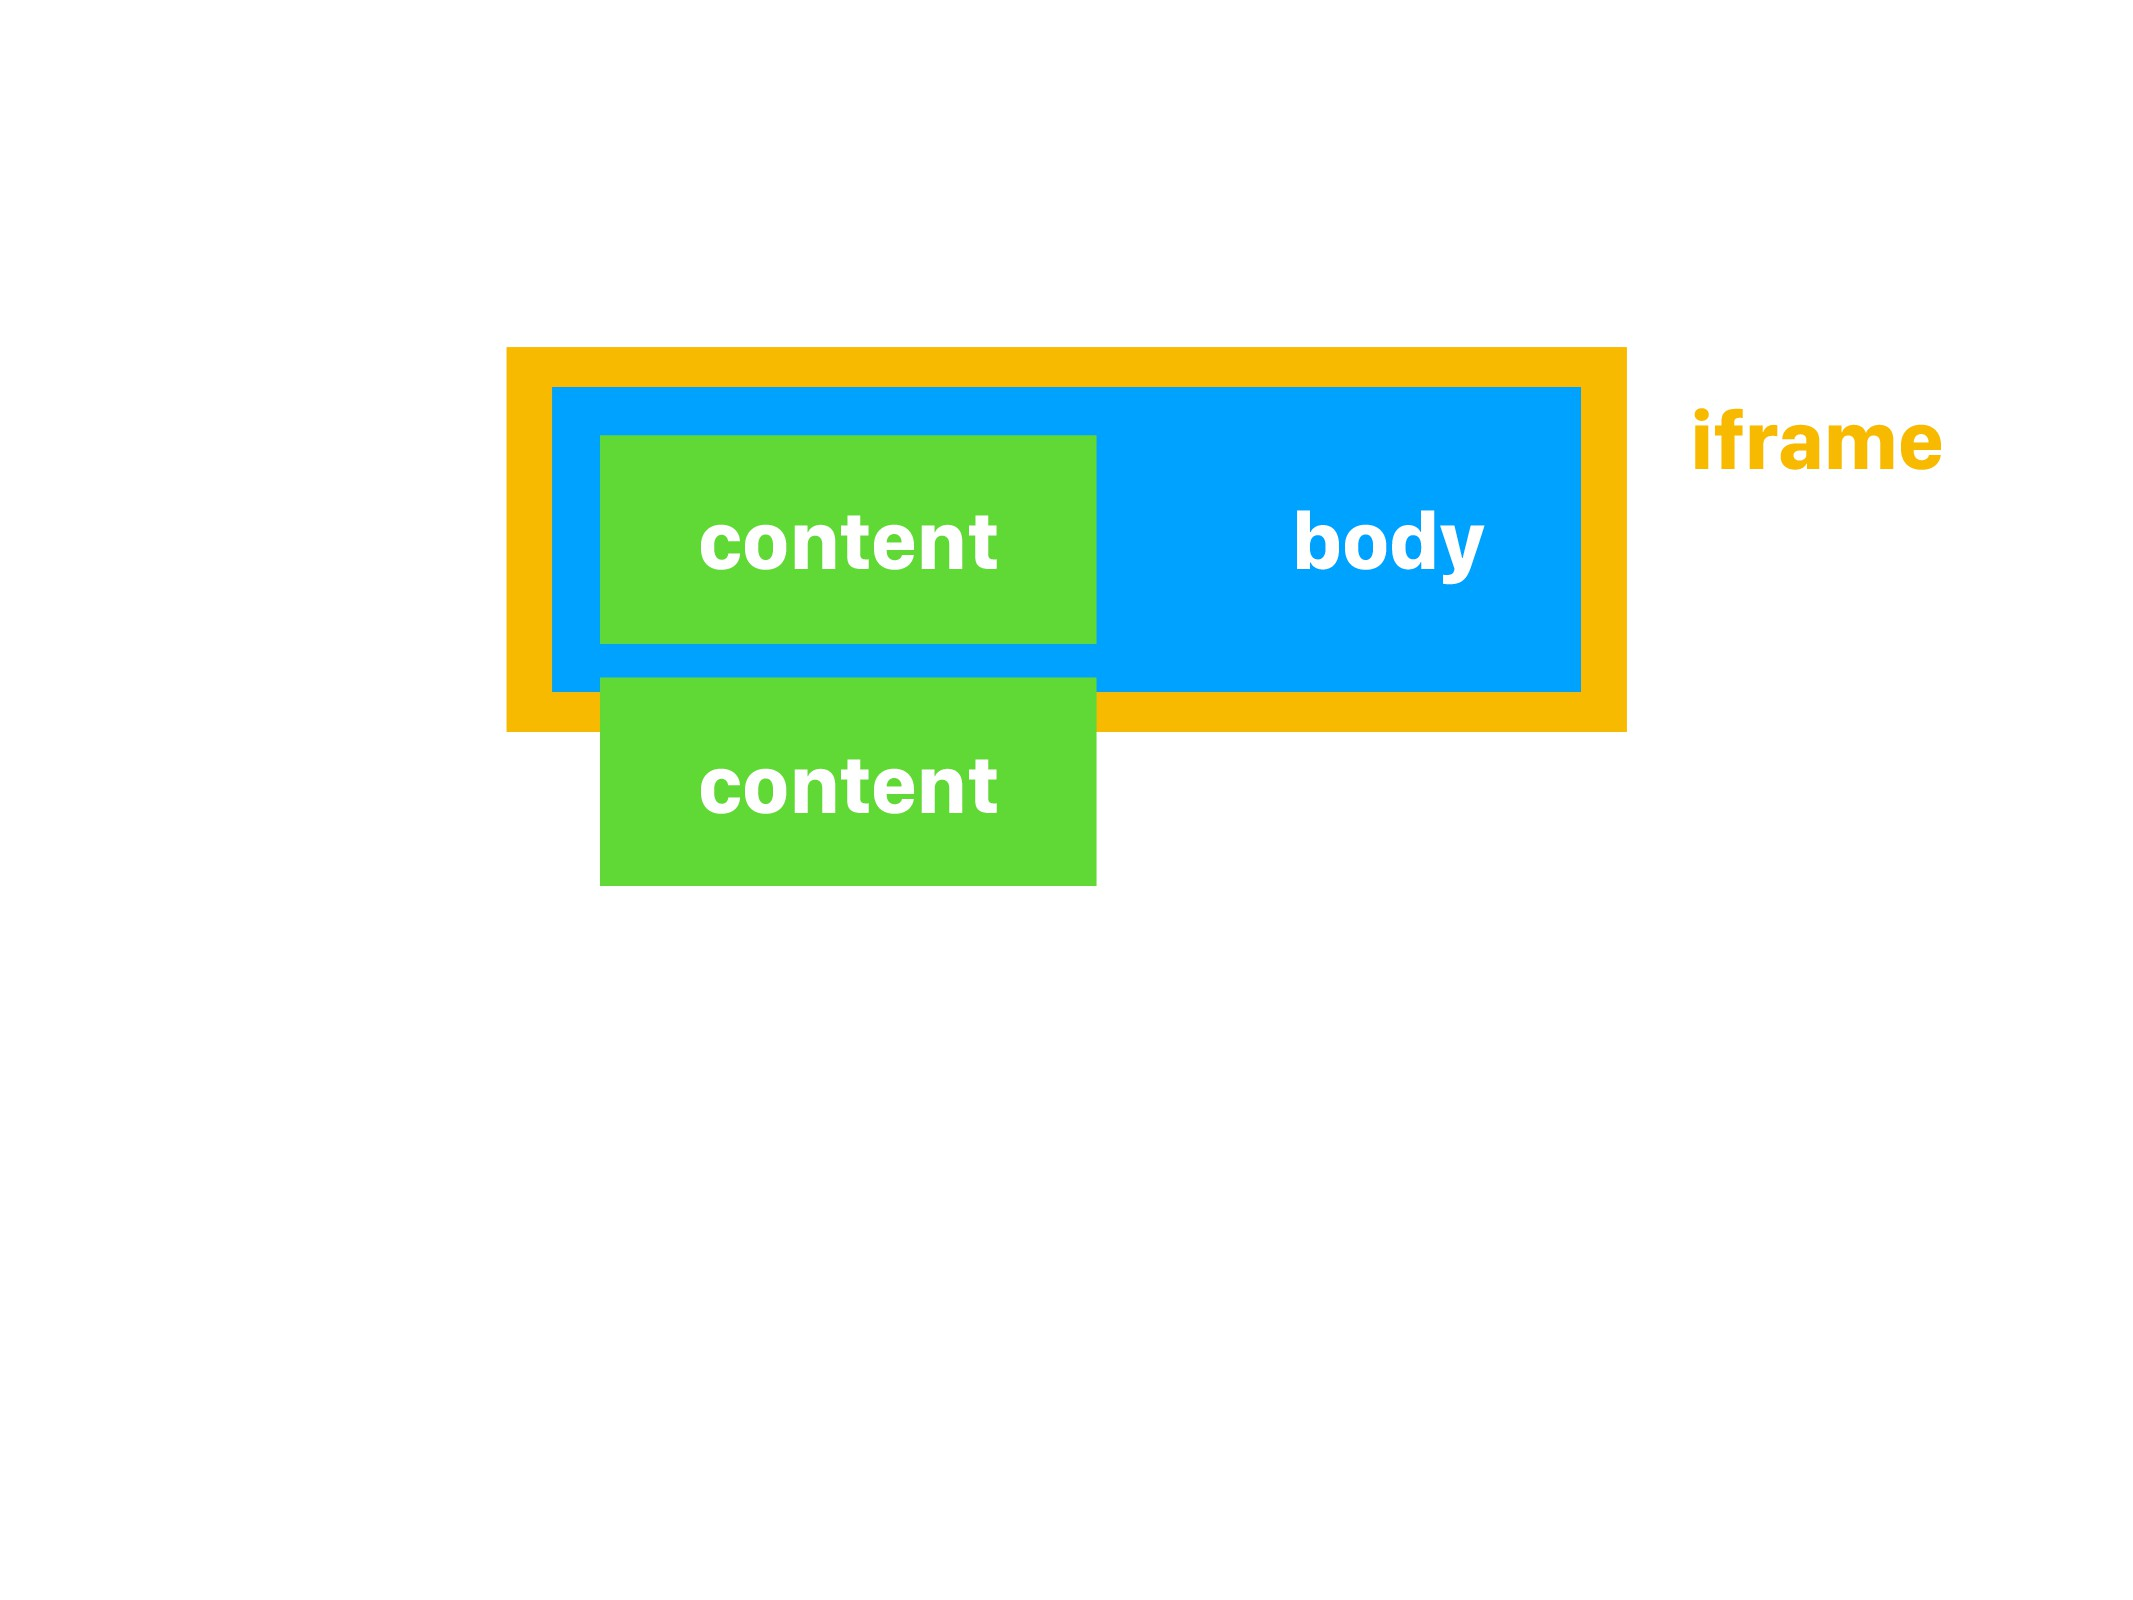 body content content iframe